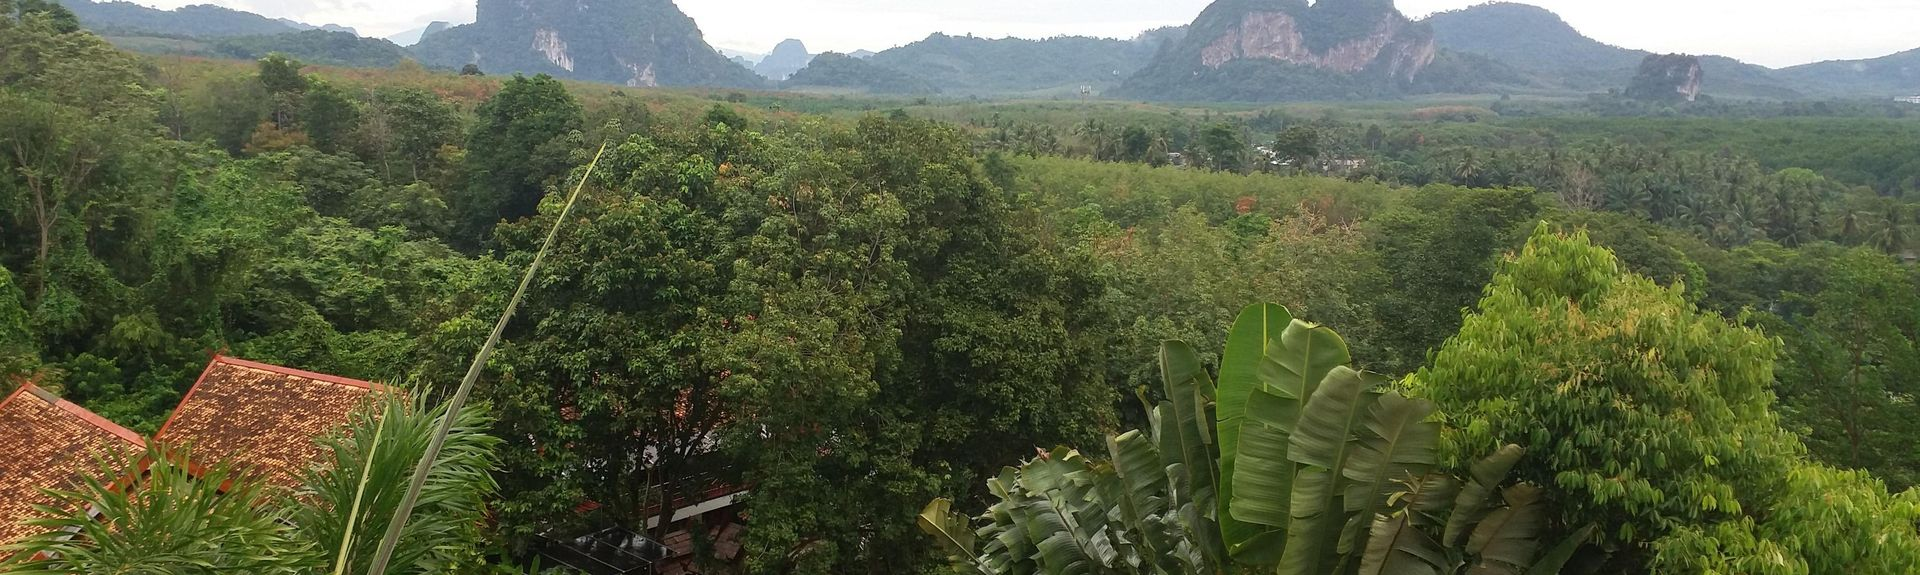 Thab Prik, Mueang Krabi District, Krabi, Thailand